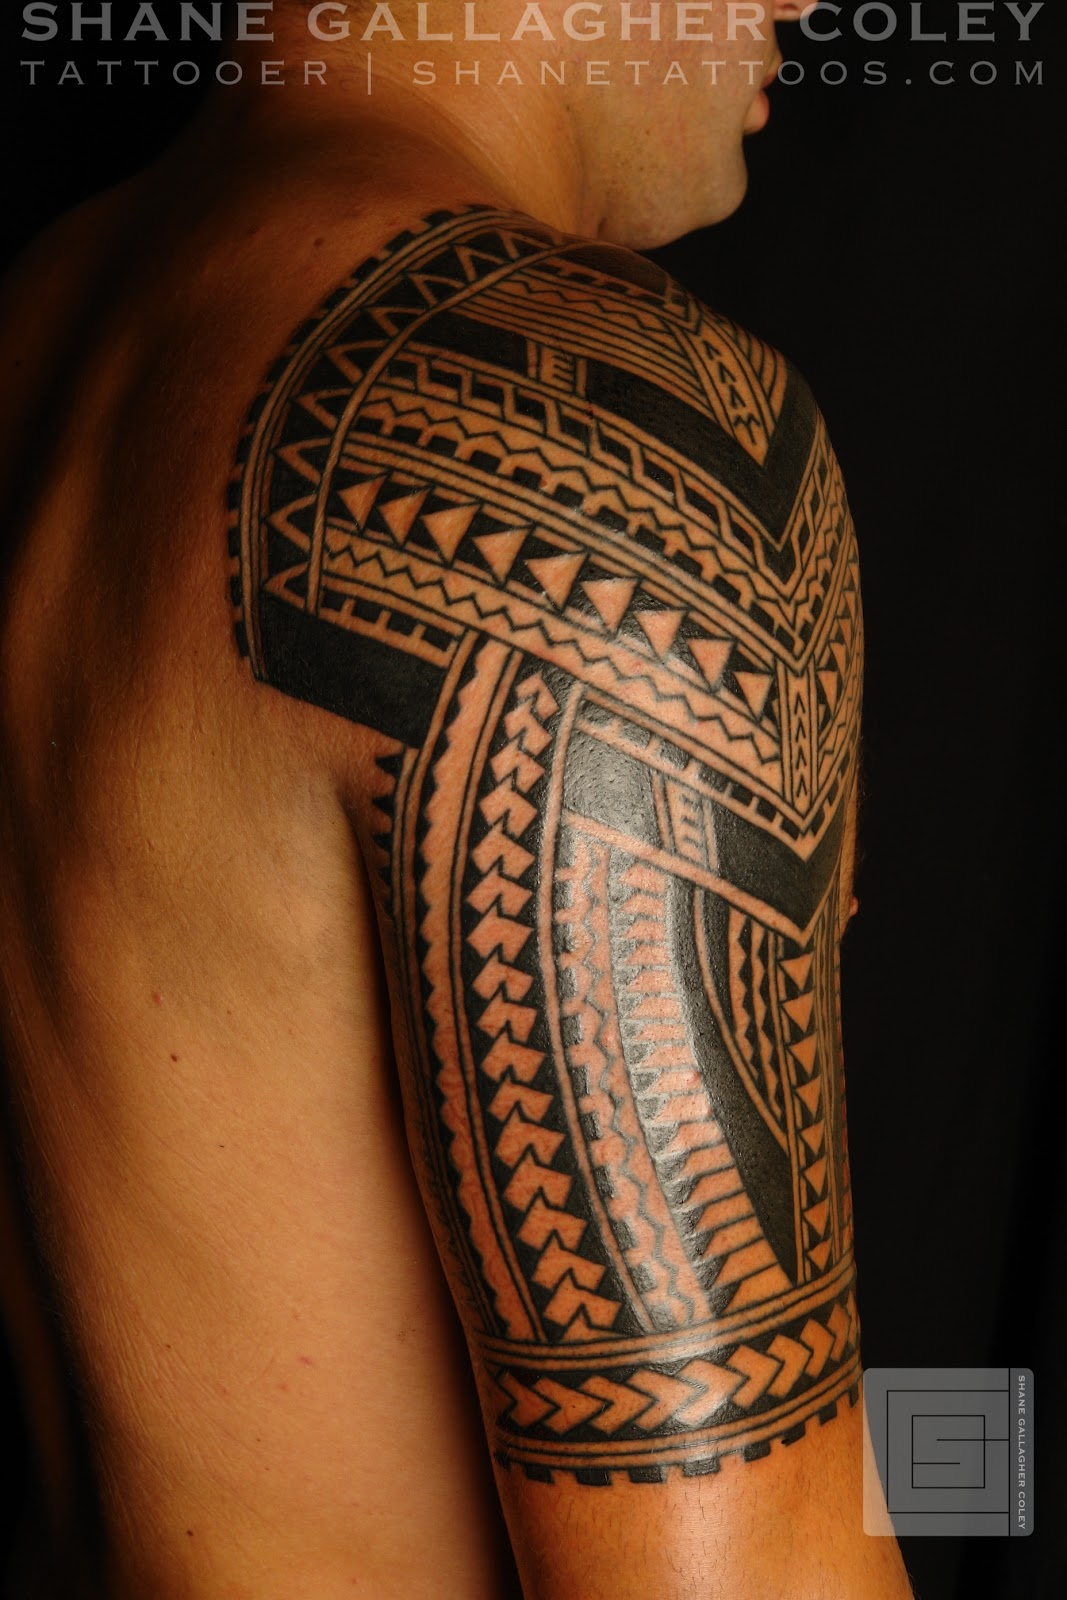 shane tattoos polynesian half sleeve. Black Bedroom Furniture Sets. Home Design Ideas